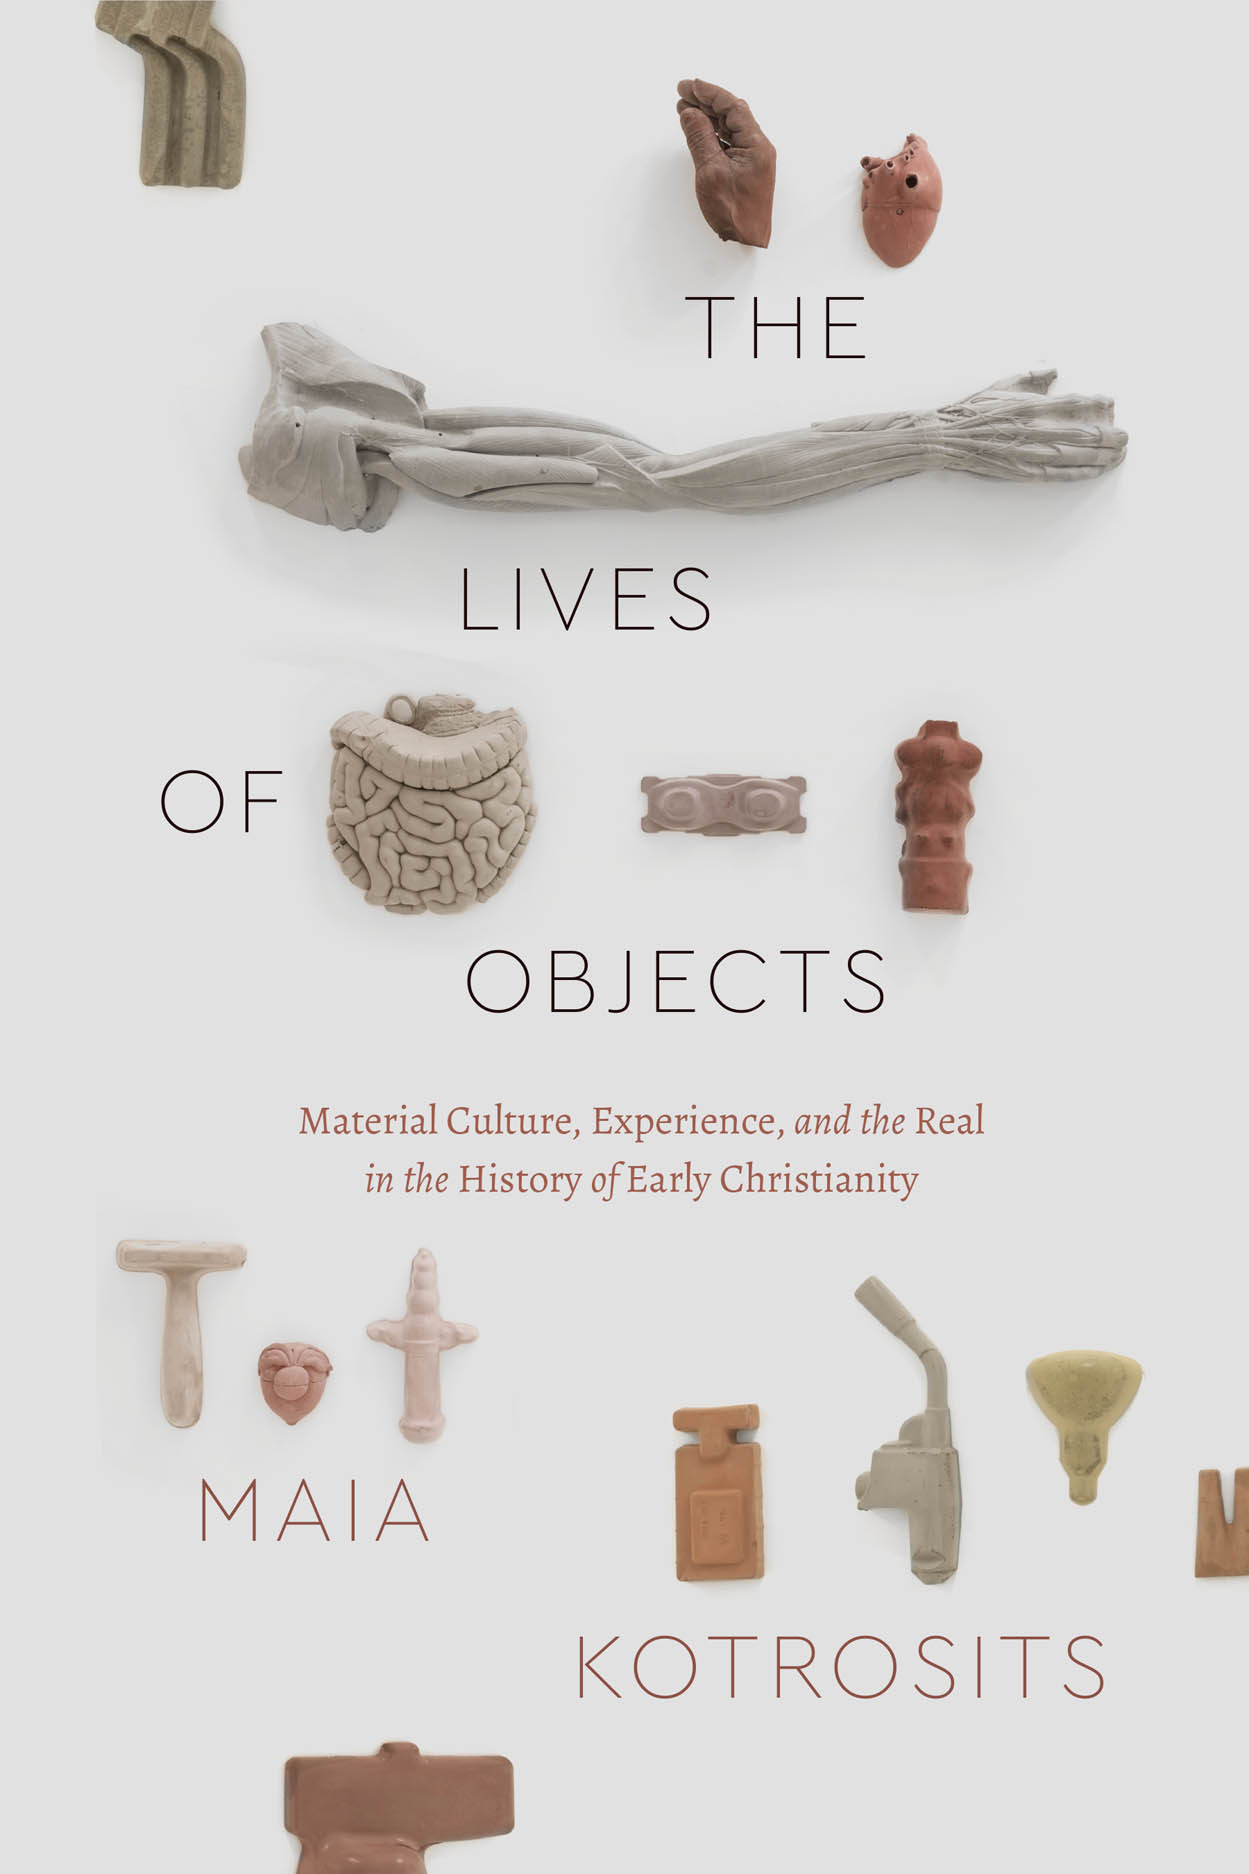 The Lives of Objects: Material Culture, Experience, and the Real in the History of Early Christianity